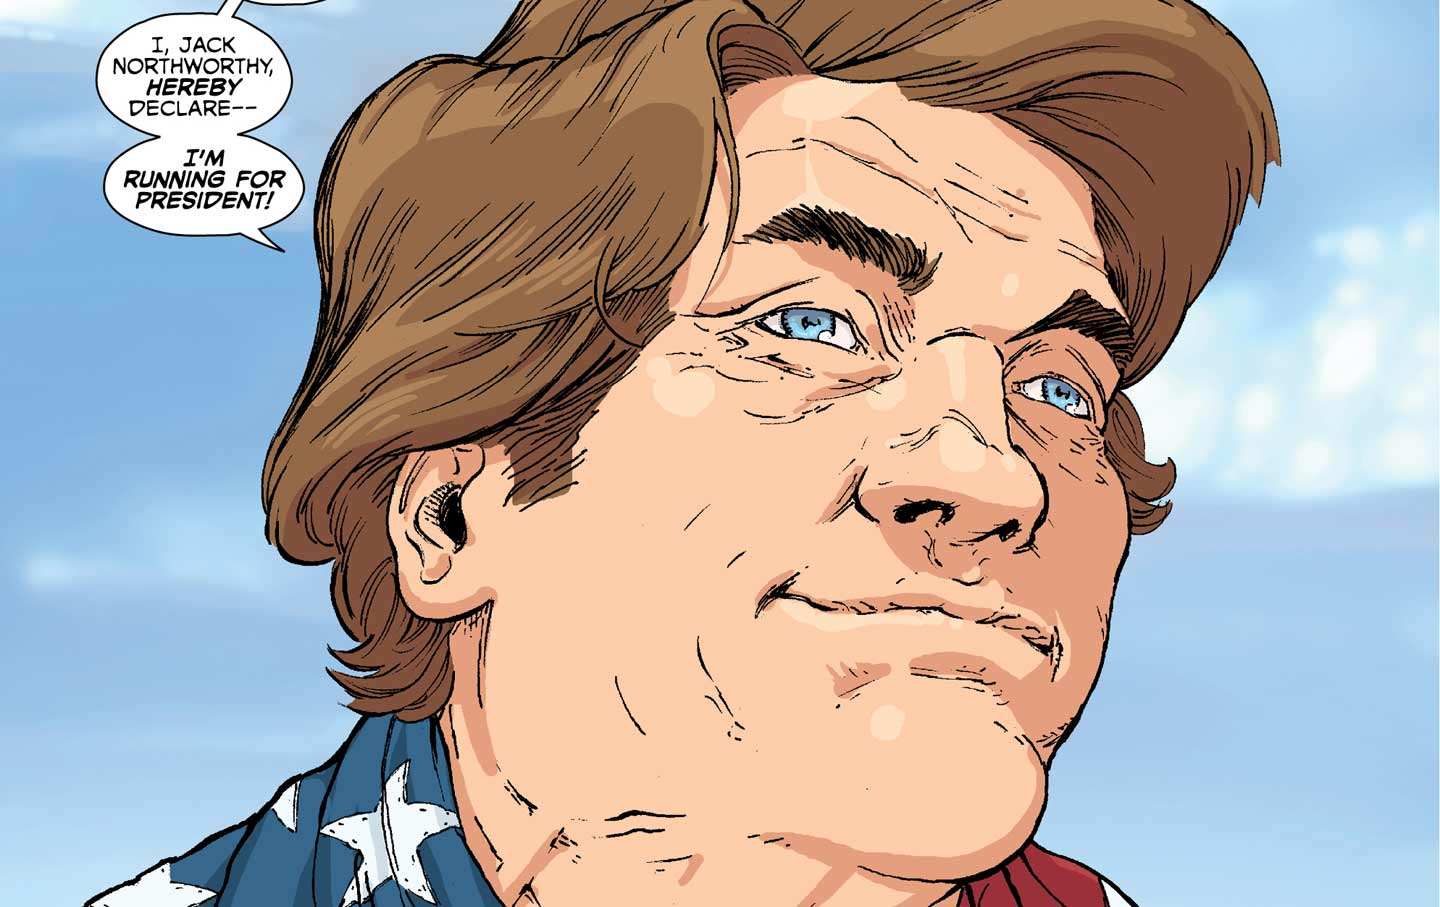 A panel from Image Comics's Citizen Jack featuring satirical presidential candidate Jack Noteworthy.